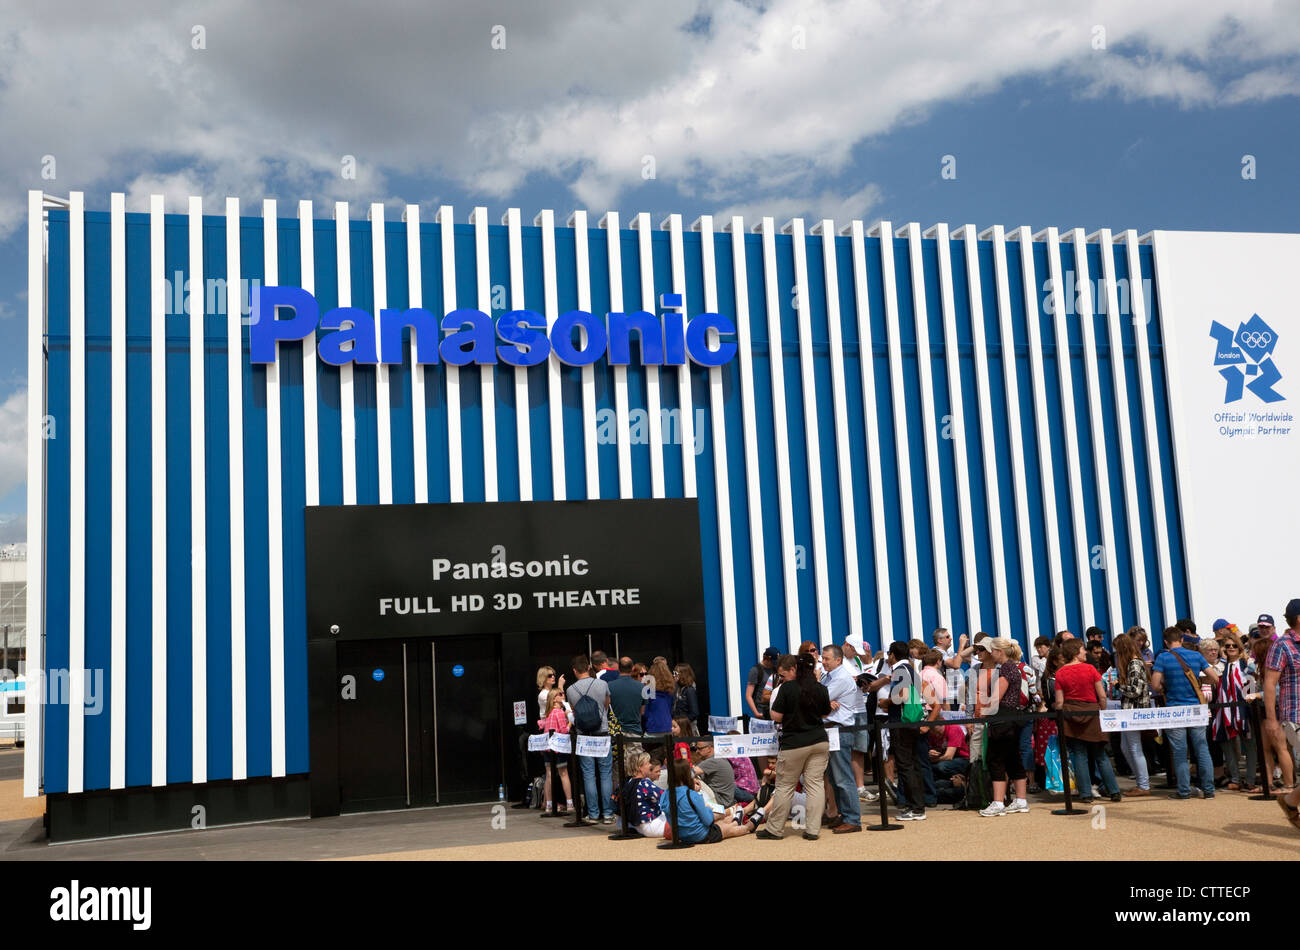 Panasonic HD 3D cinema in Olympic Park, London - Stock Image